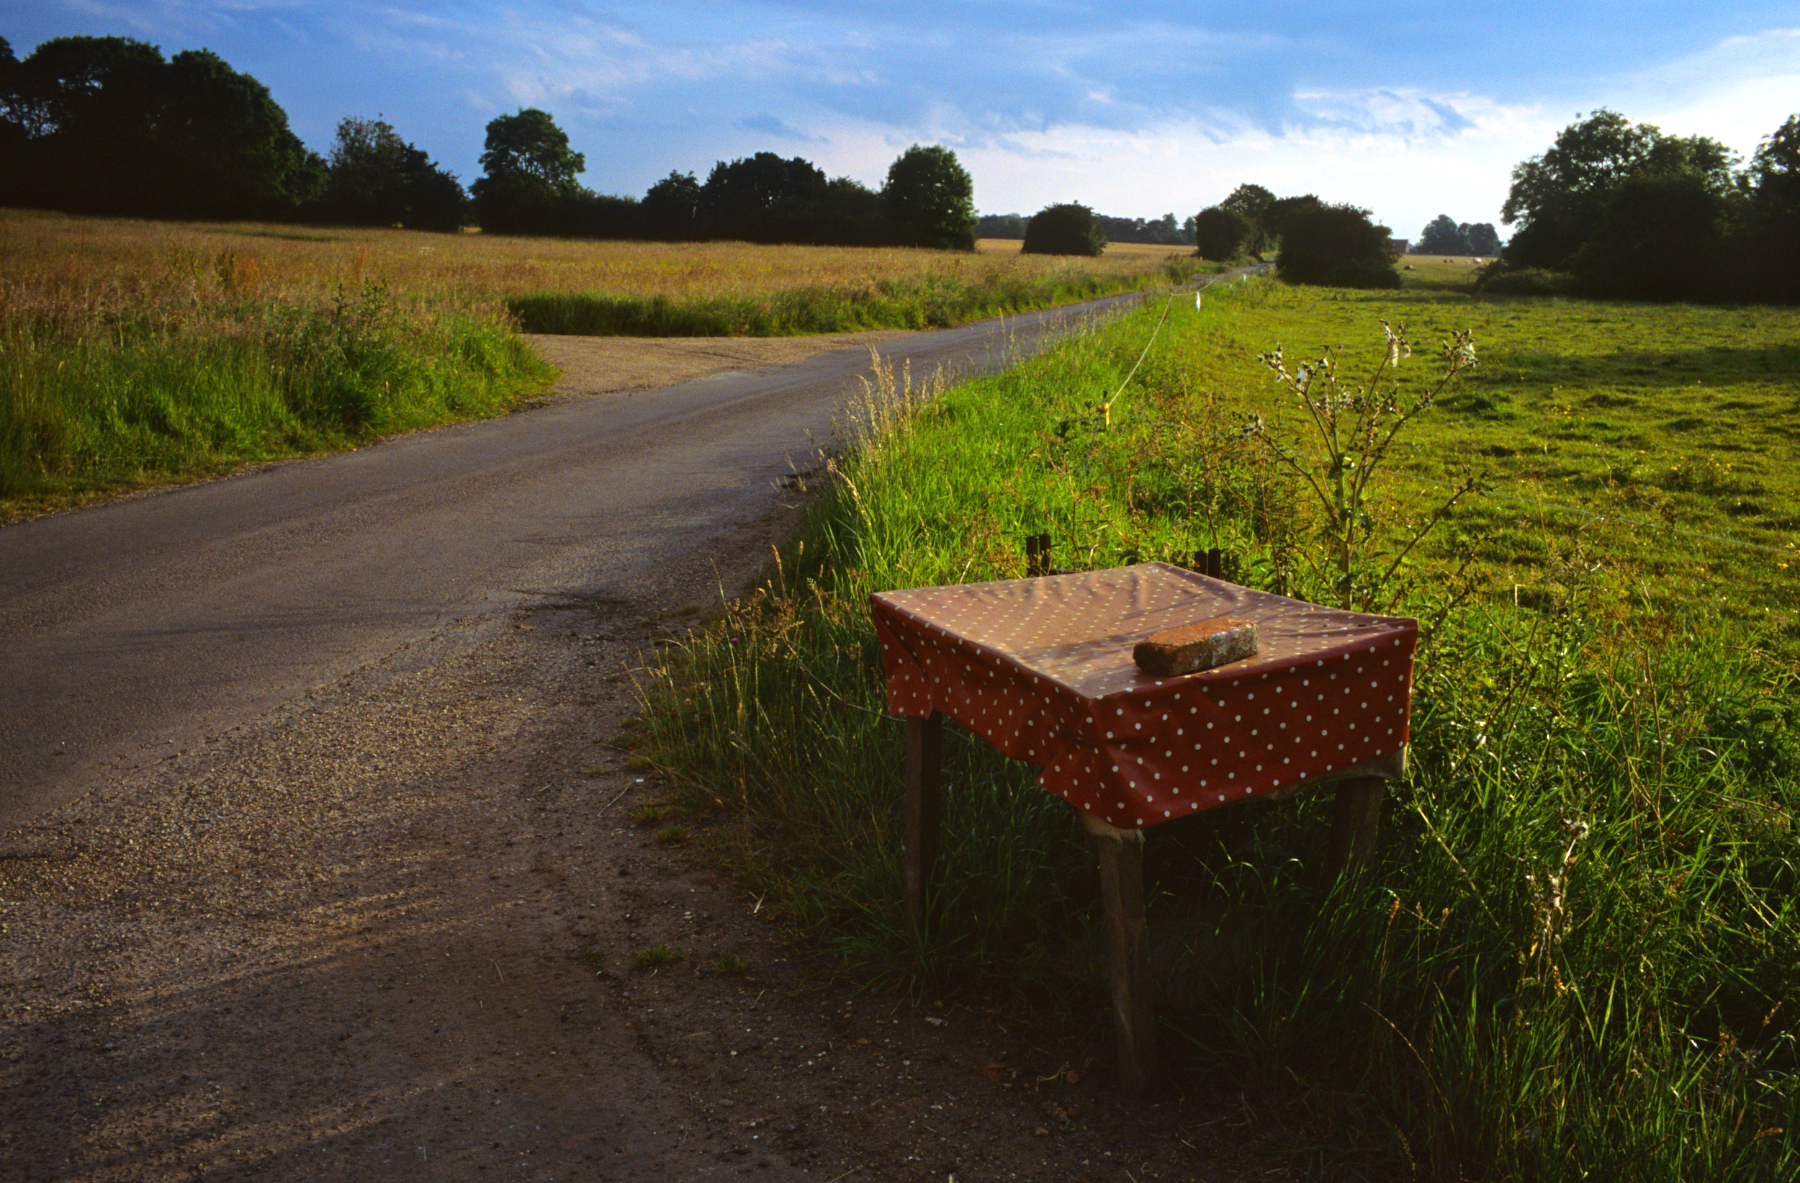 Table and Road,Mellis Common, Suffolk, 2014; 28.5 x 42 inches, Edn.of 3; 22 x 32 inches, Edn.of 5